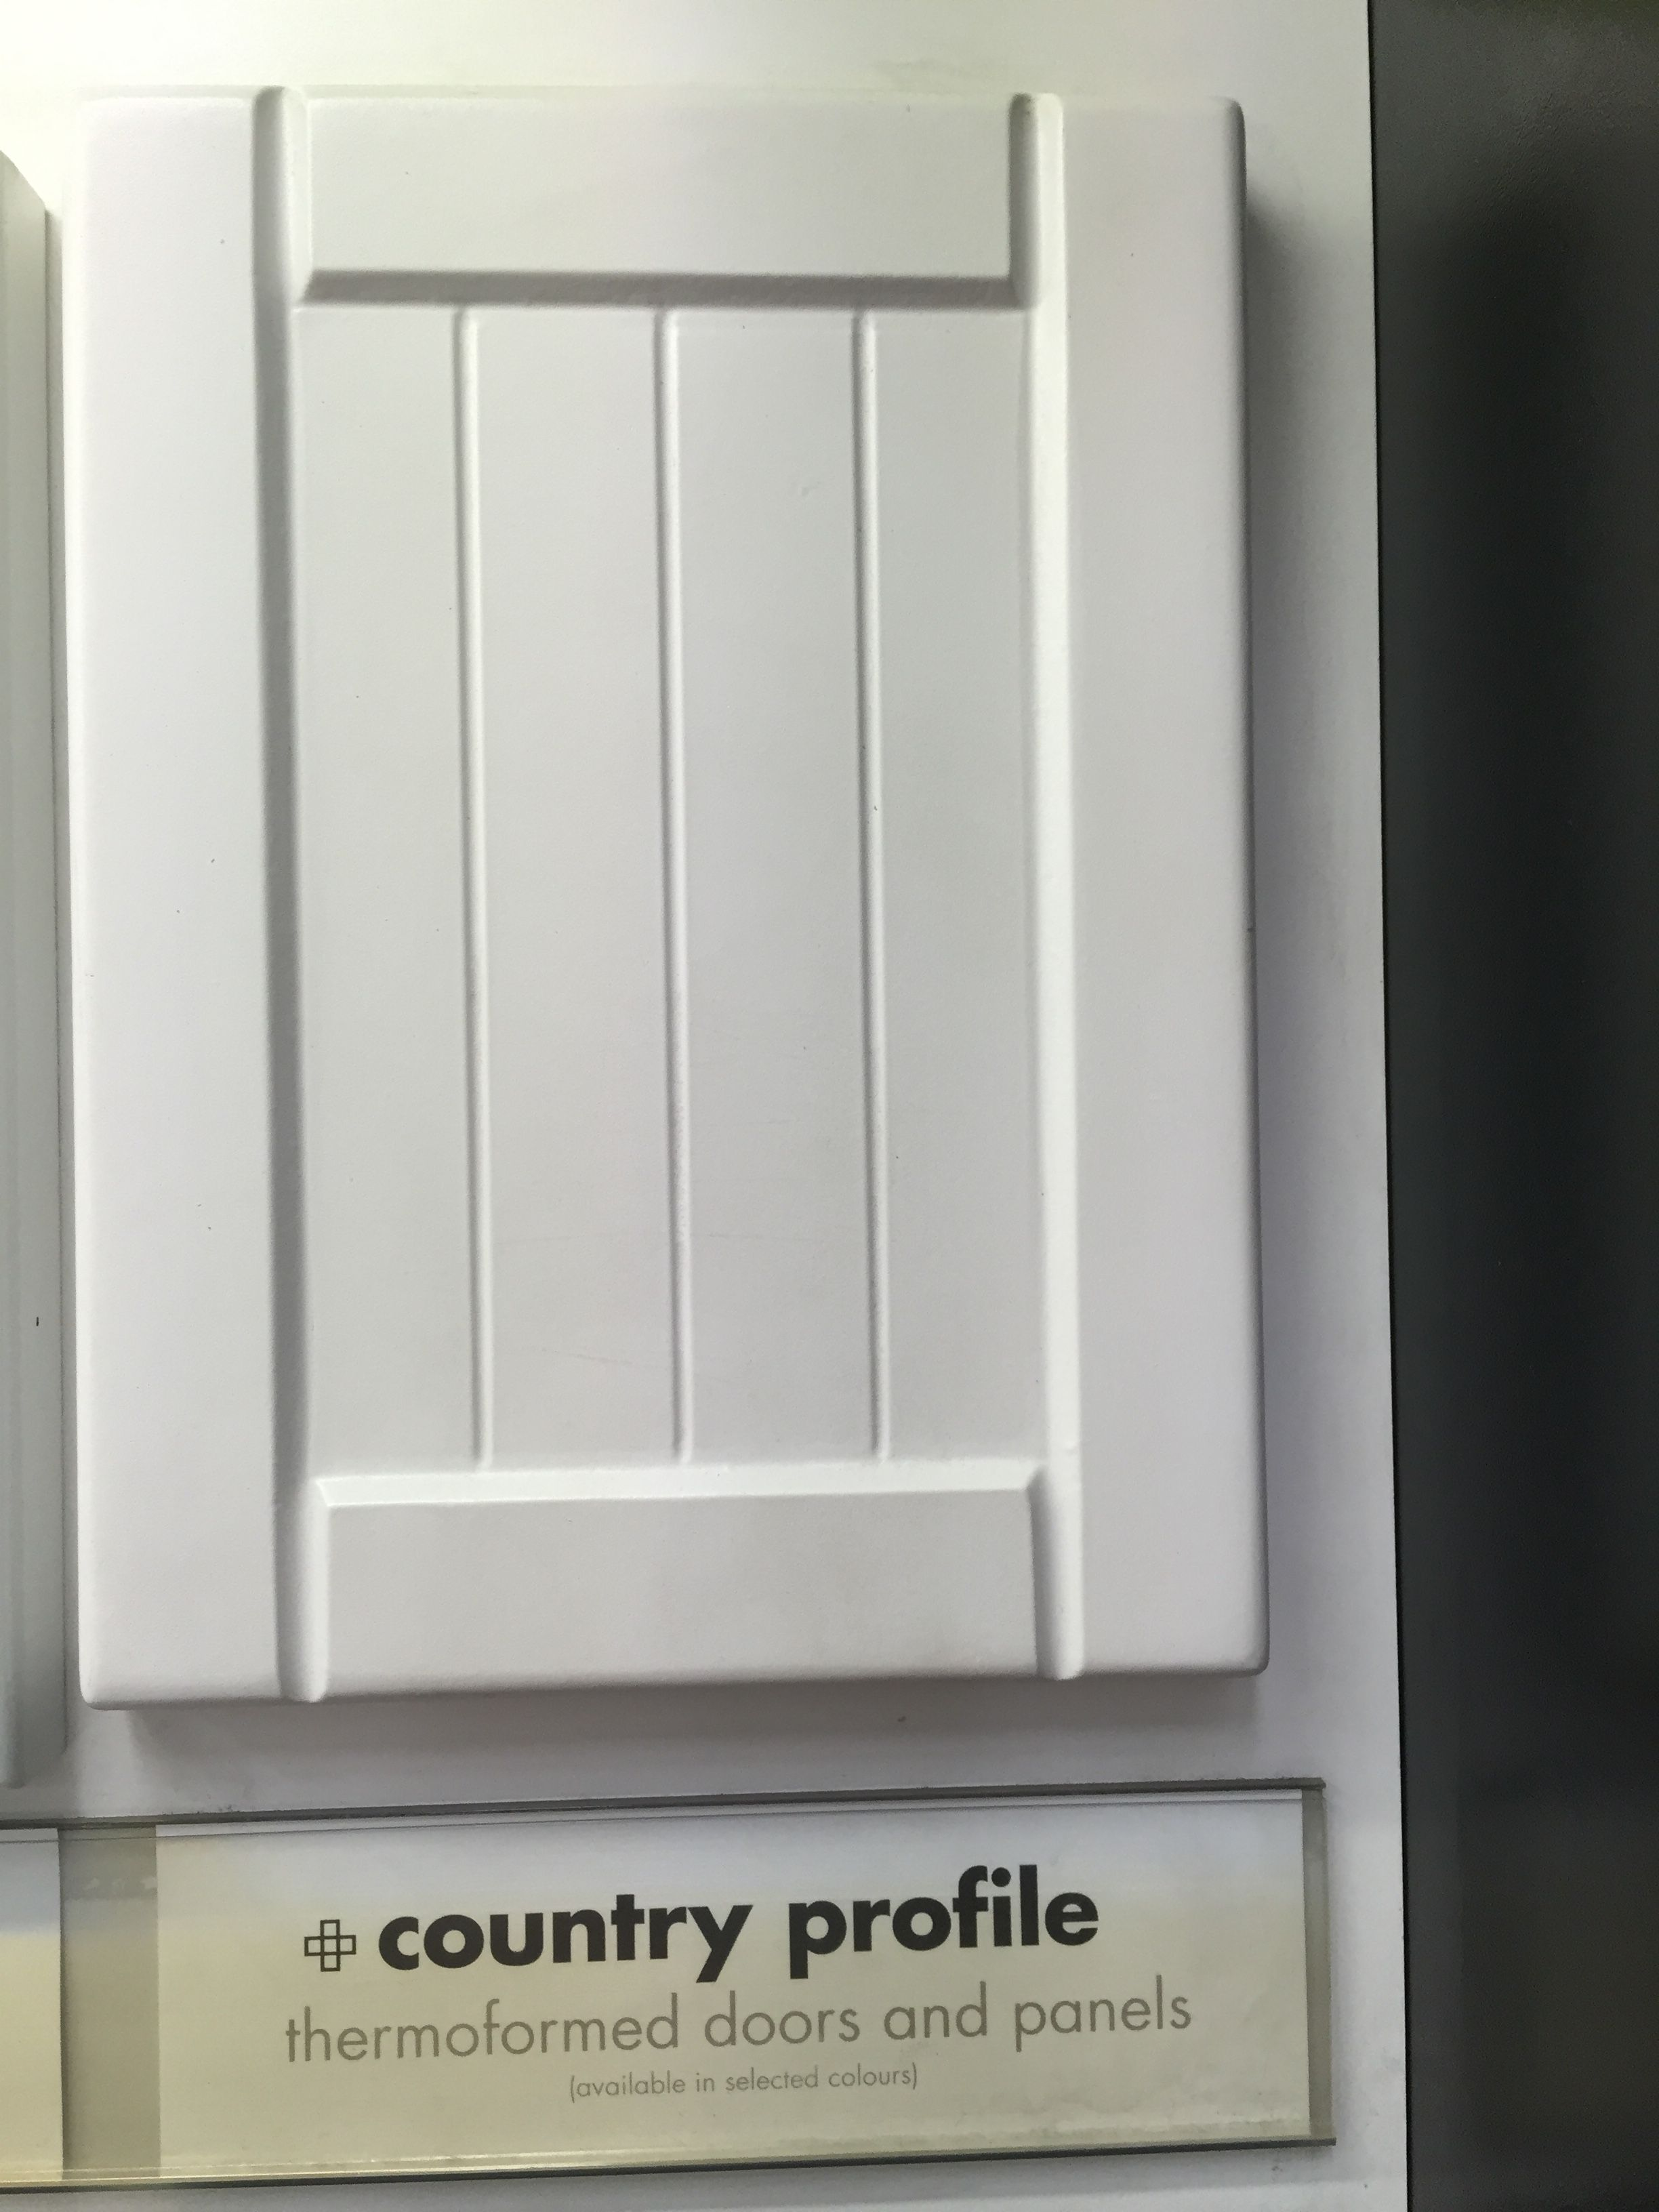 Www Country Door Com.Kaboodle Kitchen Country Doors Bunnings In 2019 Country